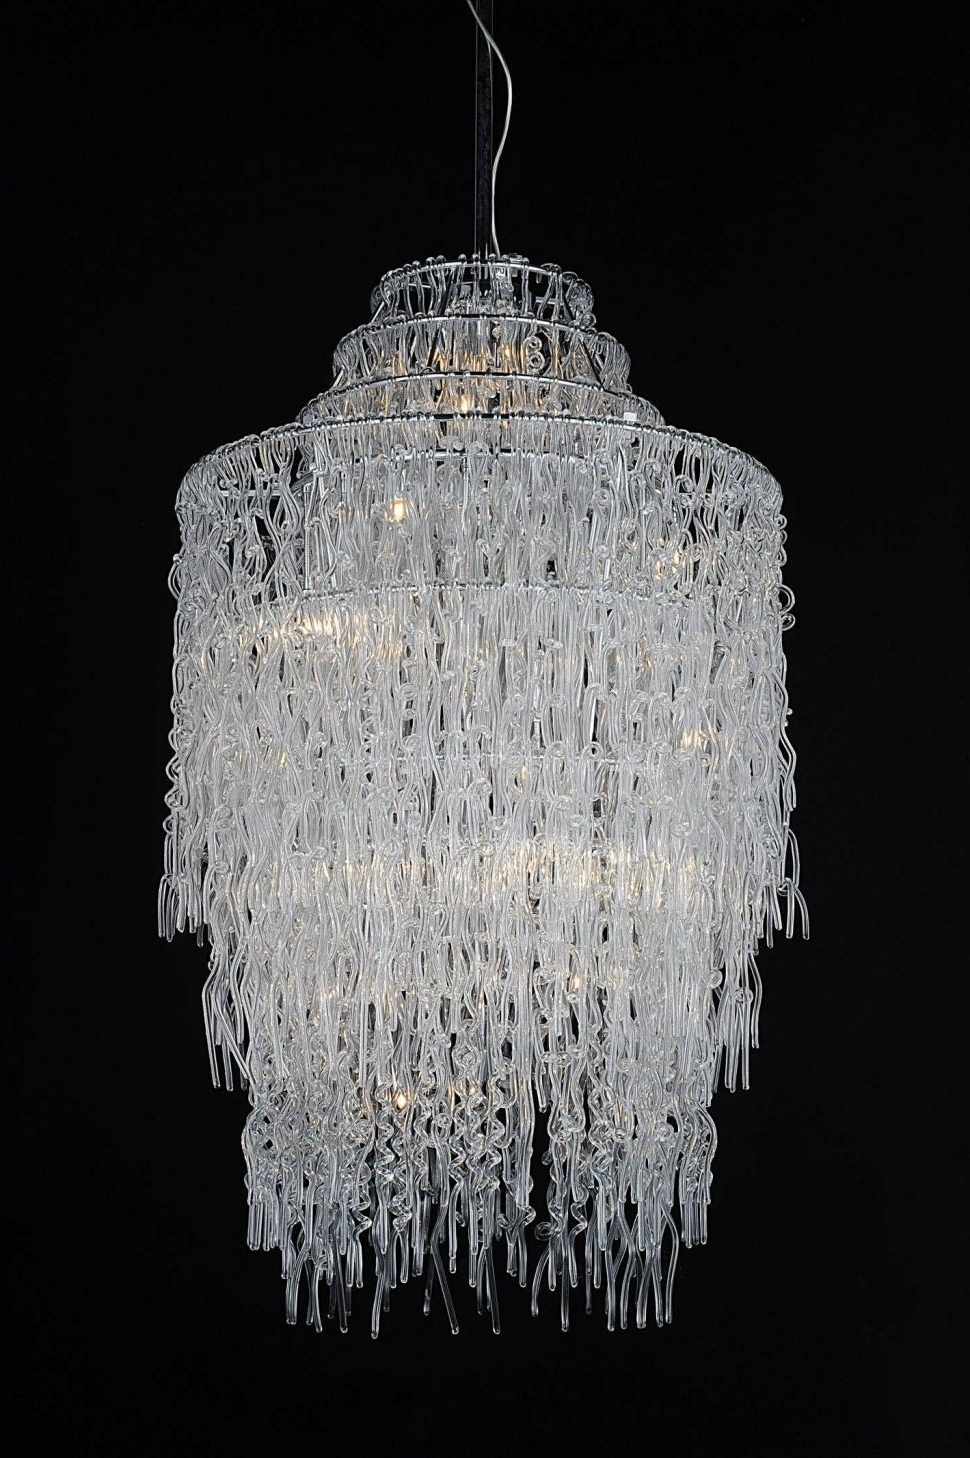 Traditional Chandeliers In Most Popular Chandeliers : Traditional Chandeliers Beautiful Chandelier (View 15 of 15)